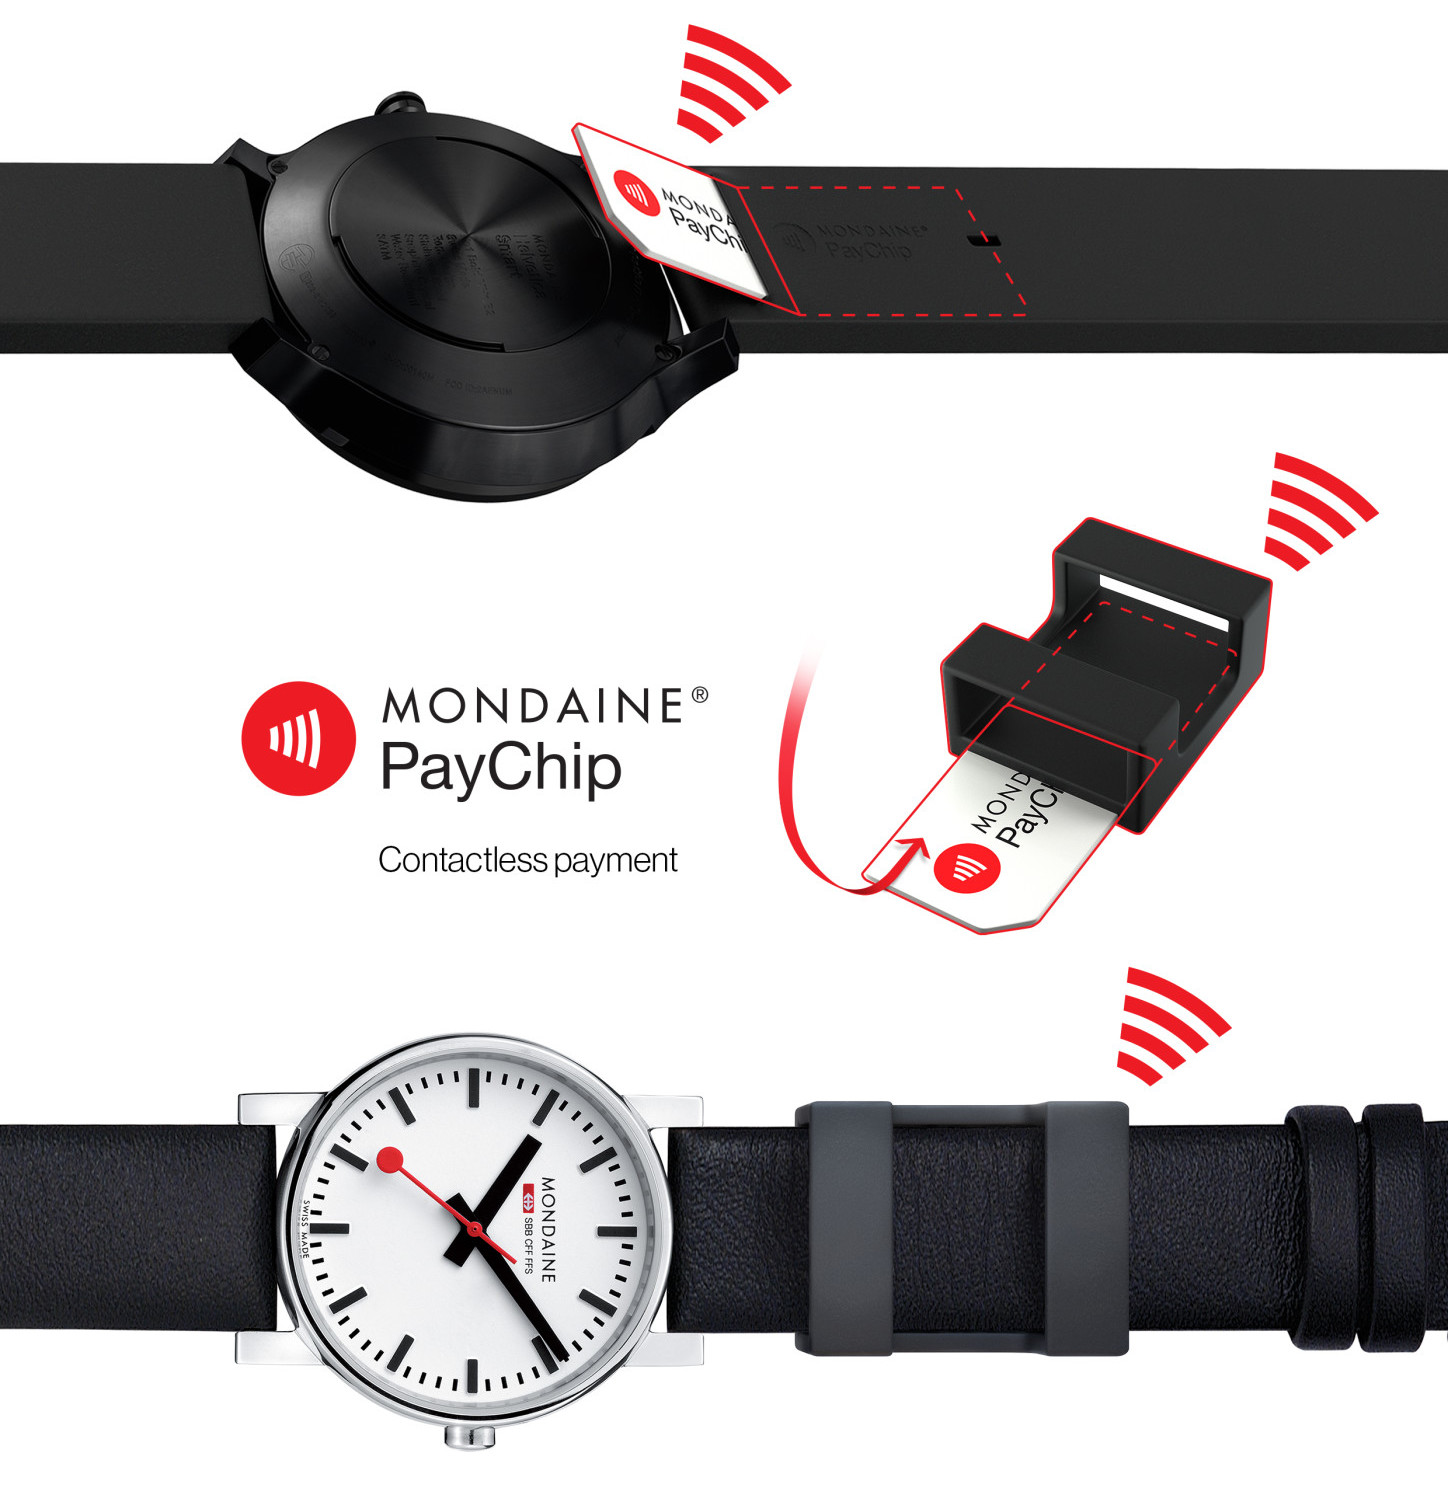 Mondaine champions 'contactless' with PayChip prototype ...